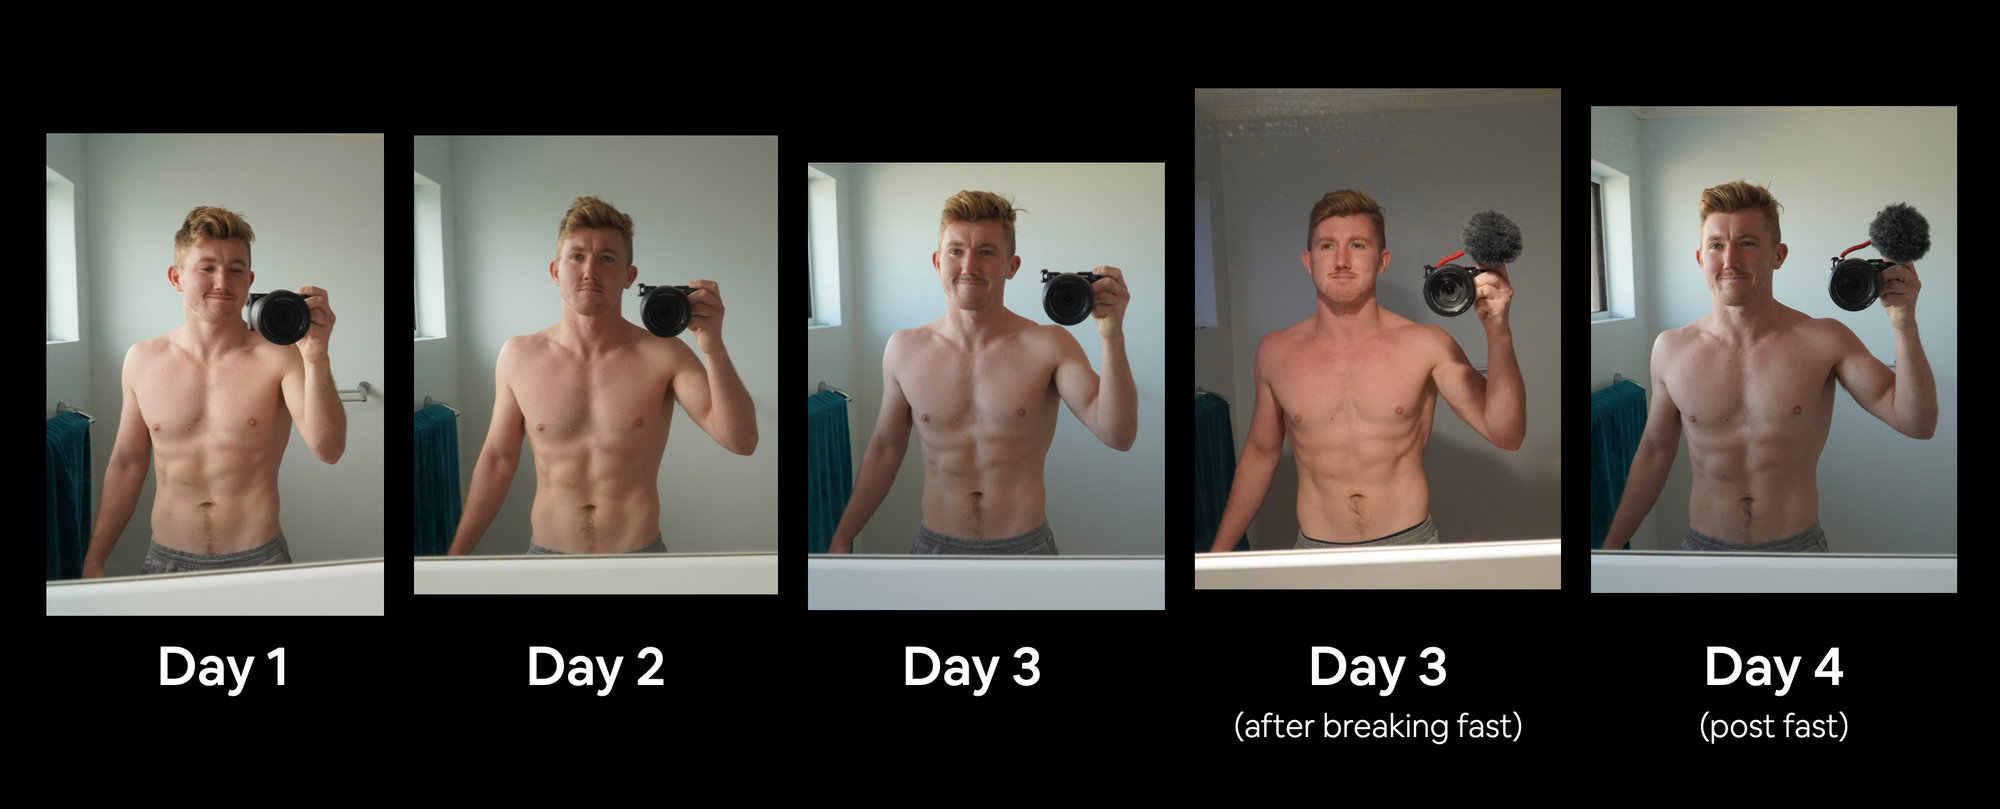 progress shots from day 1 through to day 4 of the 3 day fast